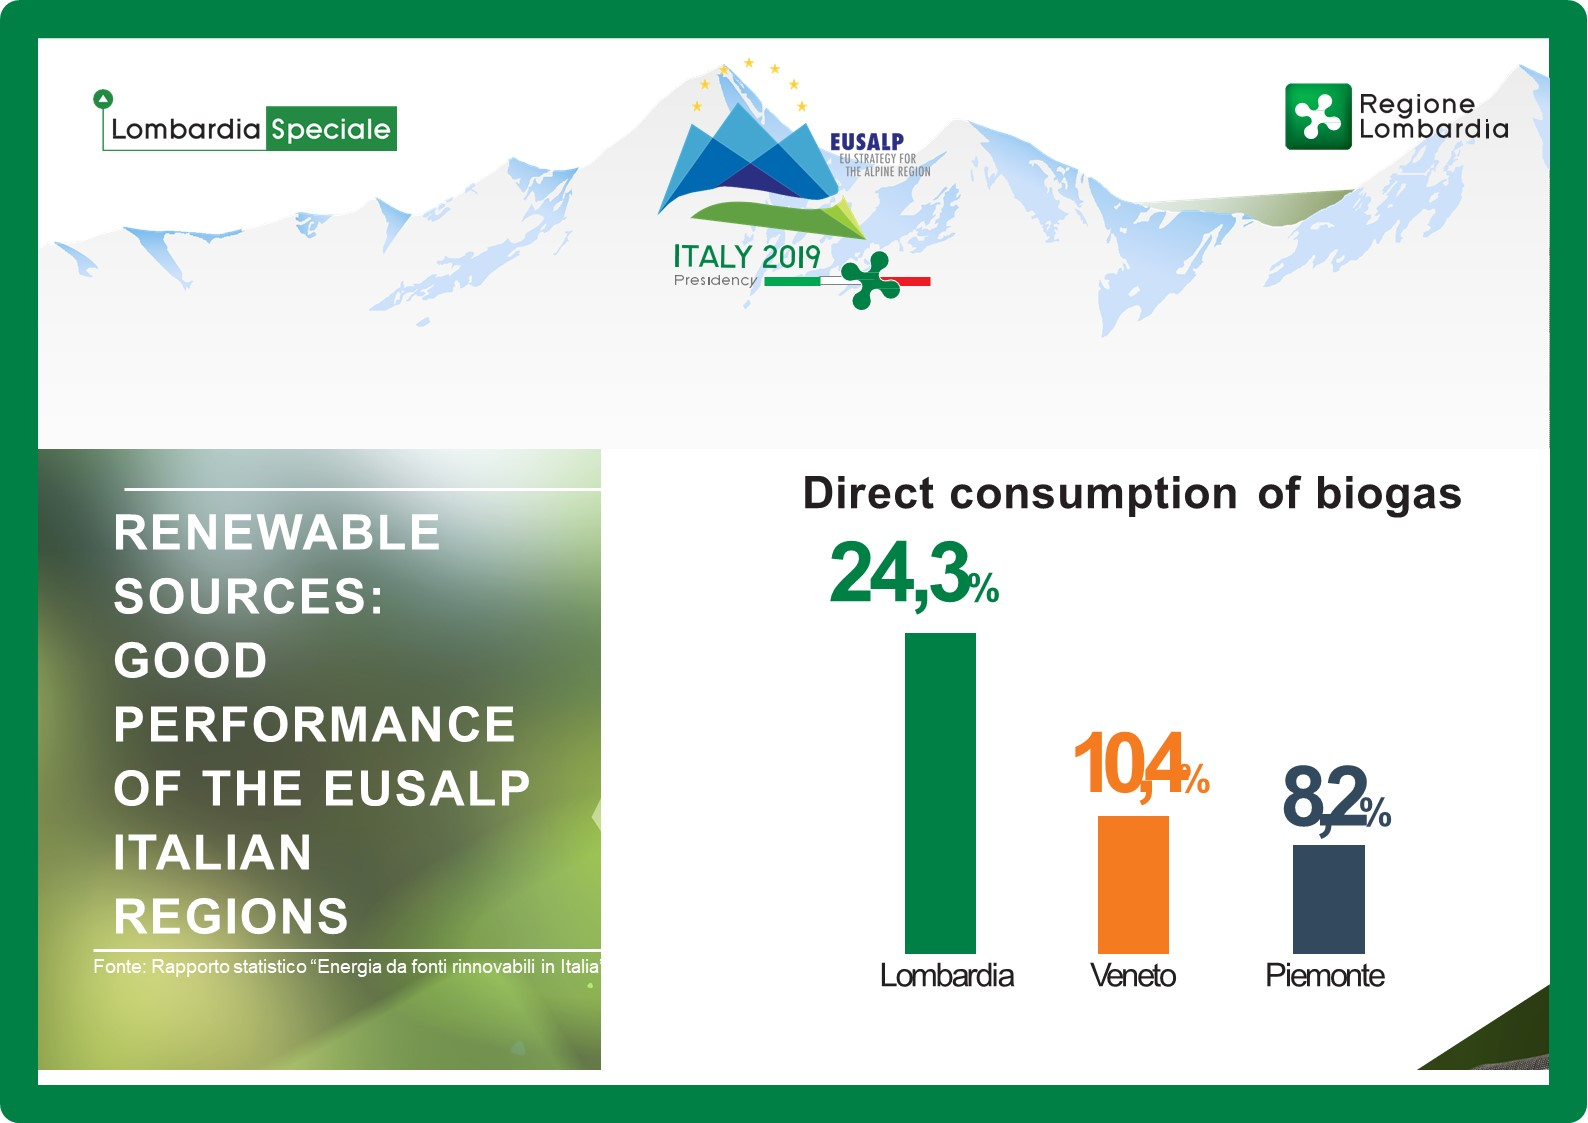 Renewable Resources: The EUSALP regions of Lombardy, Veneto and Piedmont are doing well.